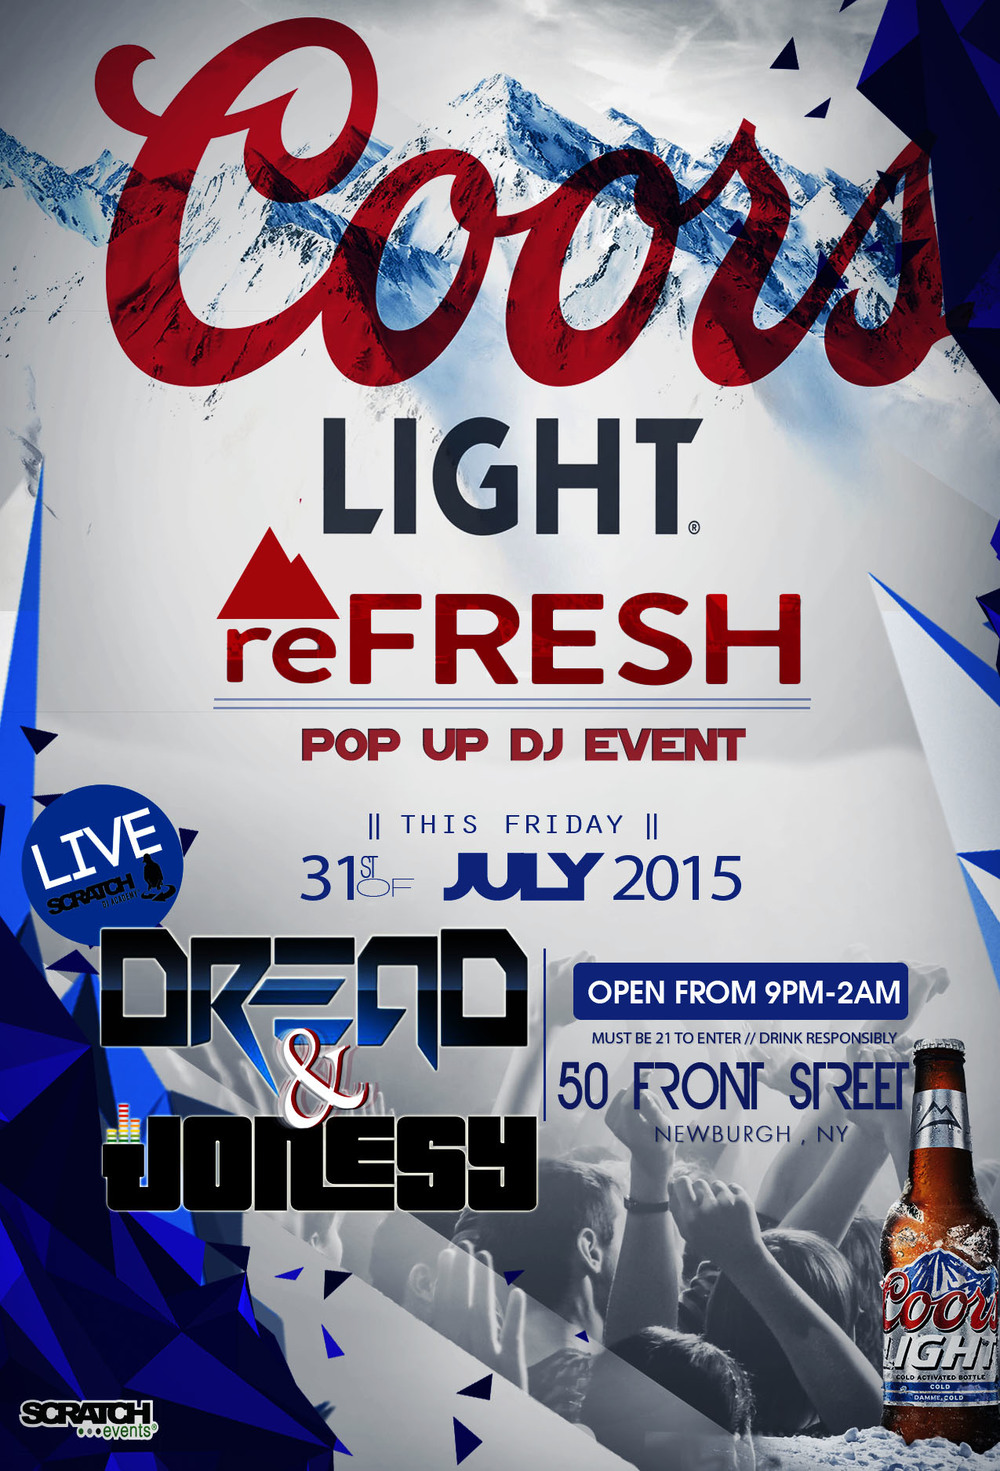 FRIDAY JULY, 31st join us at 50 Front Street in Newburgh, NY for the Coors Light Pop Up Event powered by Scratch DJ Academy.  Music by DVDJ Dread & yours truly from 11 pm-2 am.  Come learn to DJ & enjoy some Coors Light beverages with me!